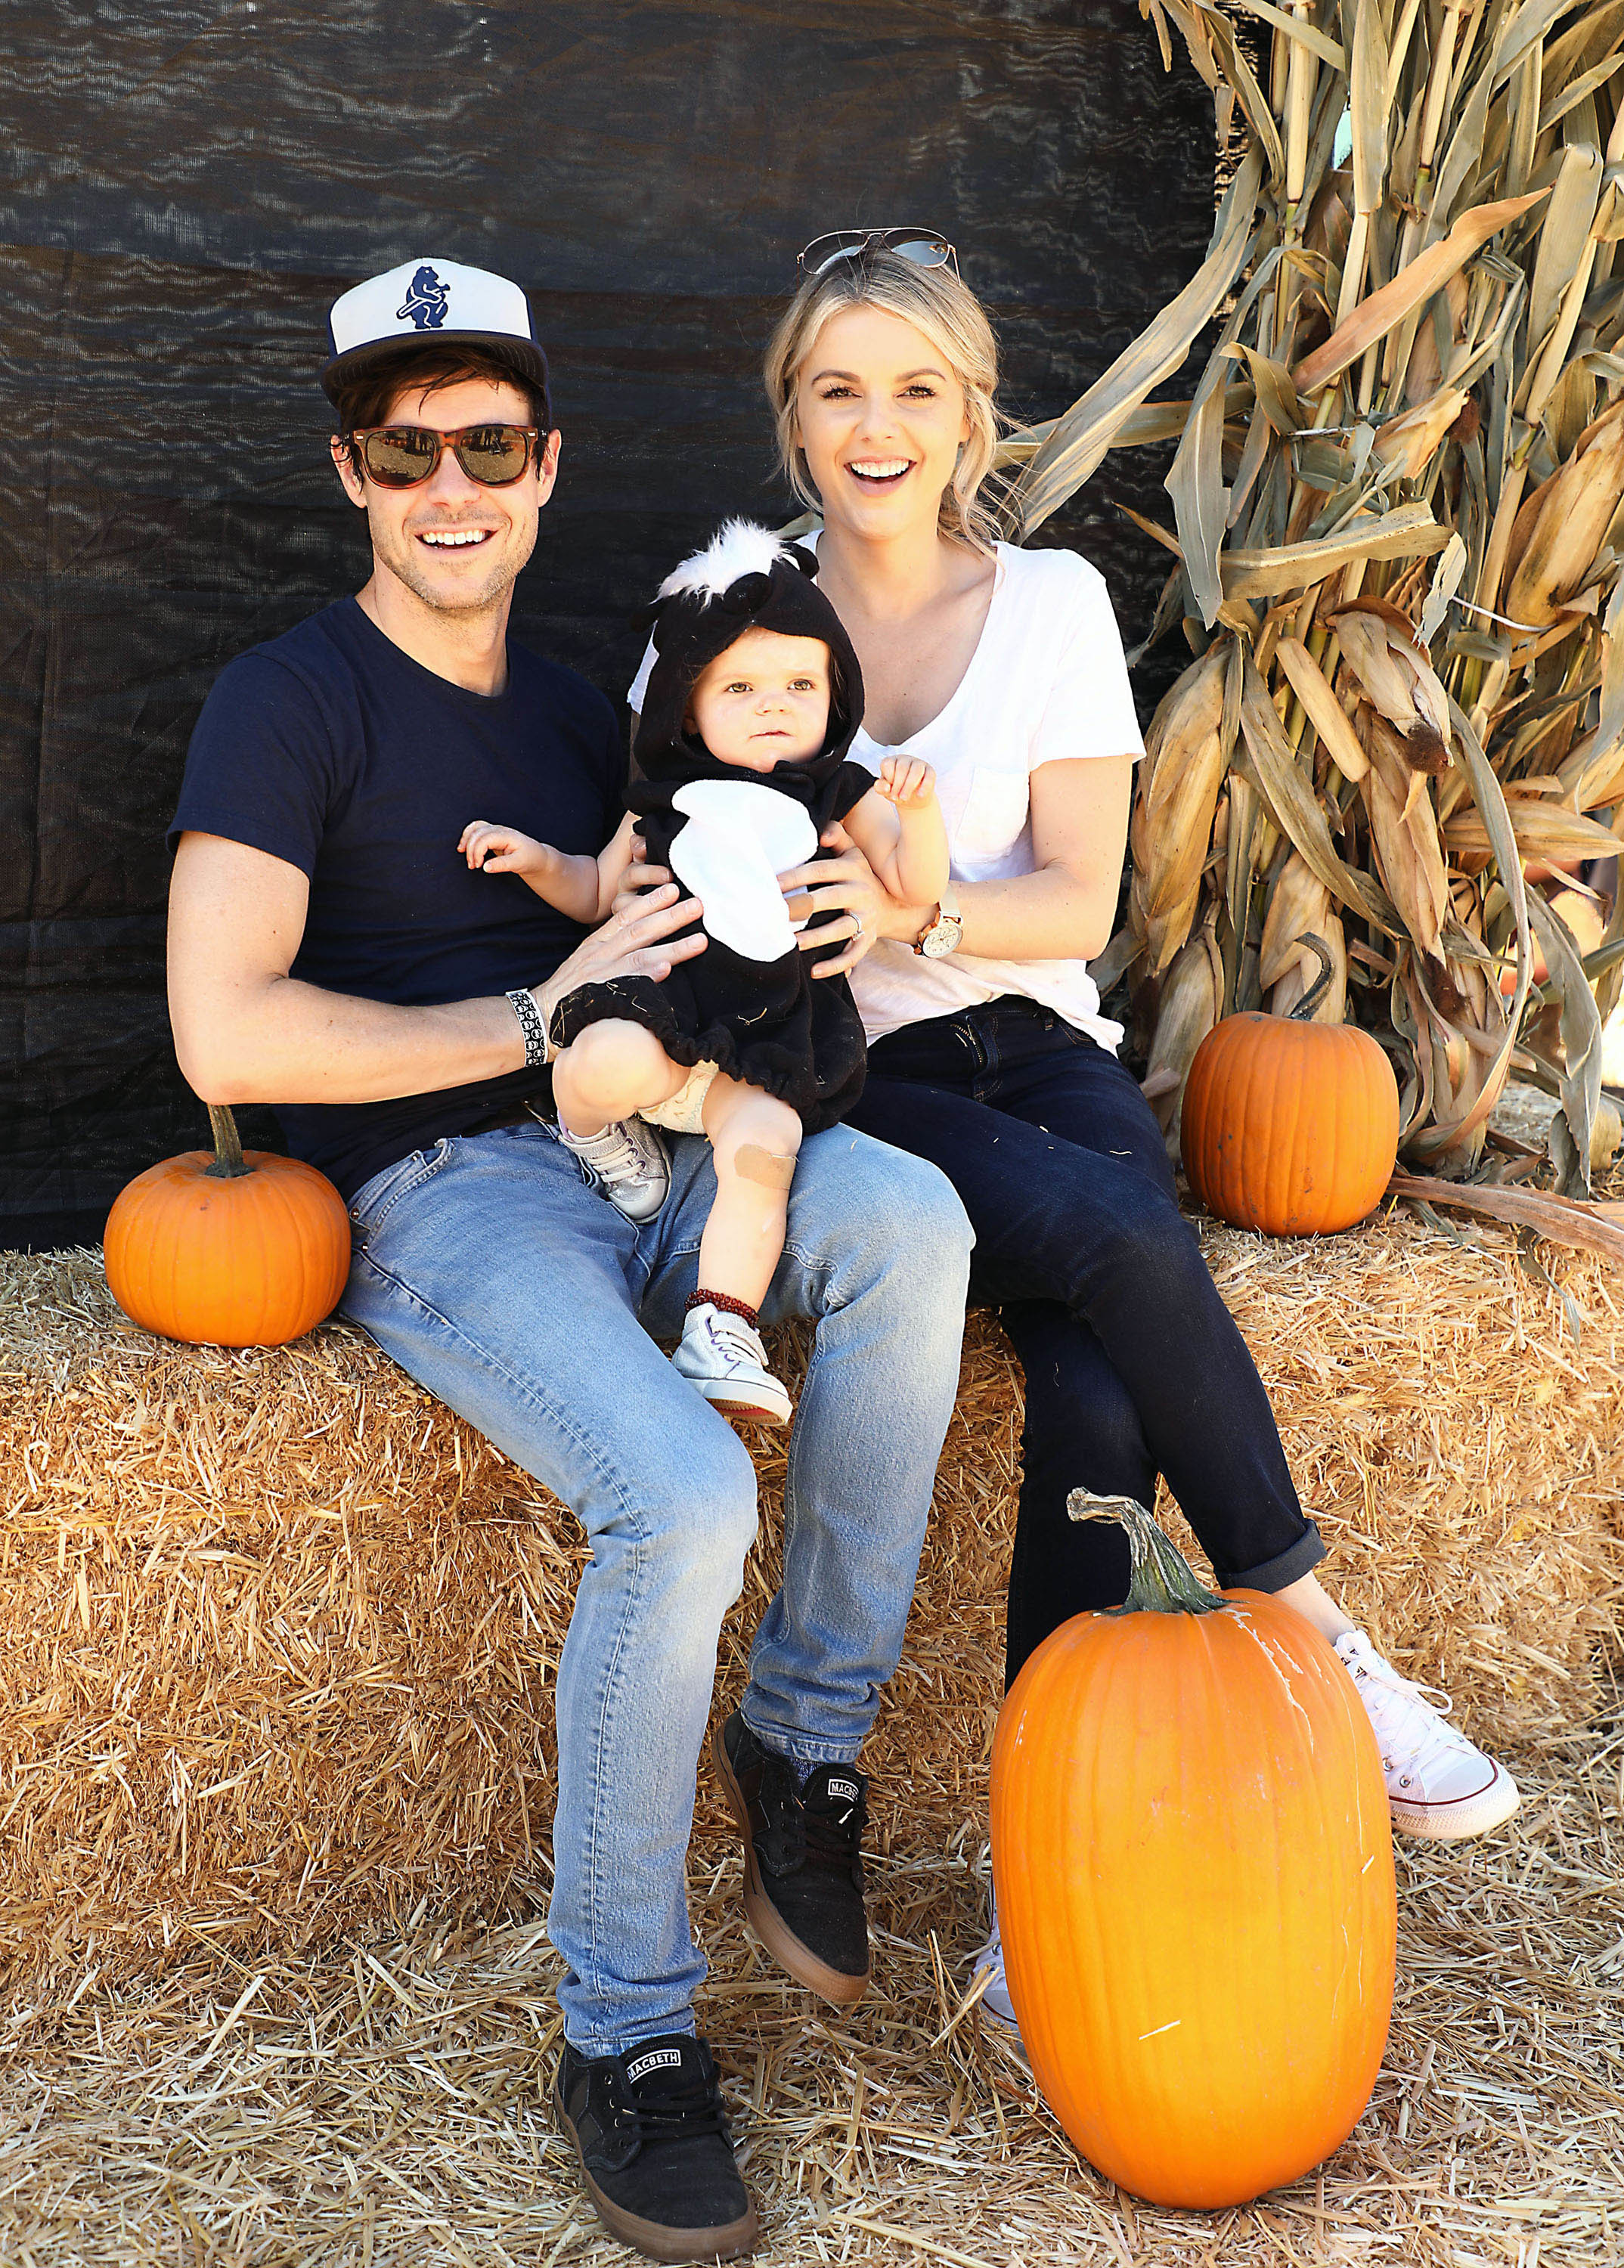 Ali Fedotowsky, Kevin Manno, Molly Manno visited the Mr. Bones Pumpkin Patch in Culver City, California on Oct. 7, 2017.